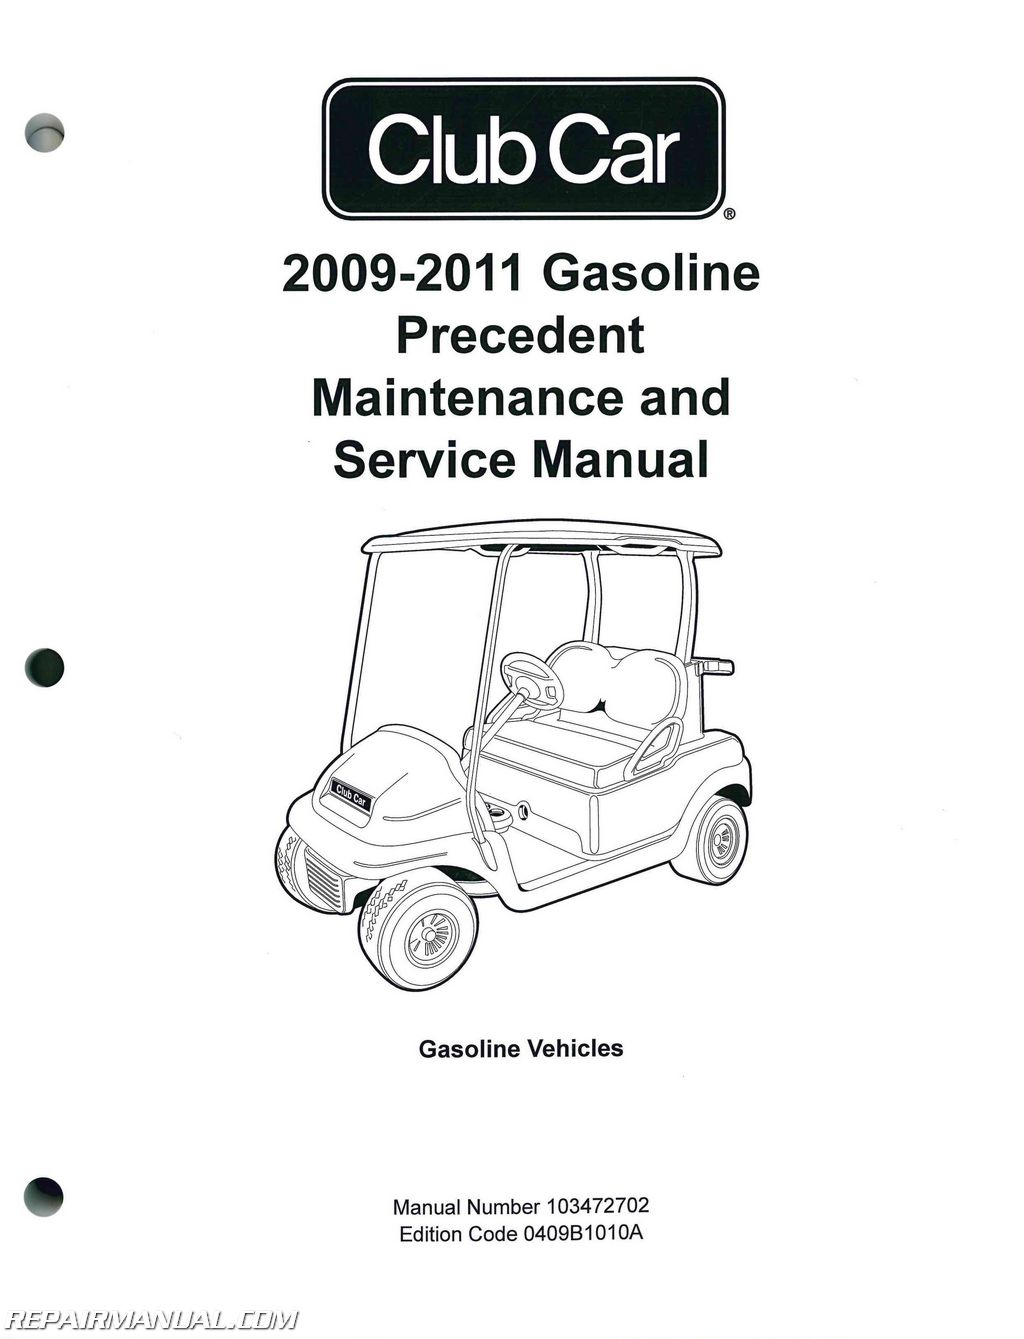 Club Car Gasoline Precedent Maintenance And